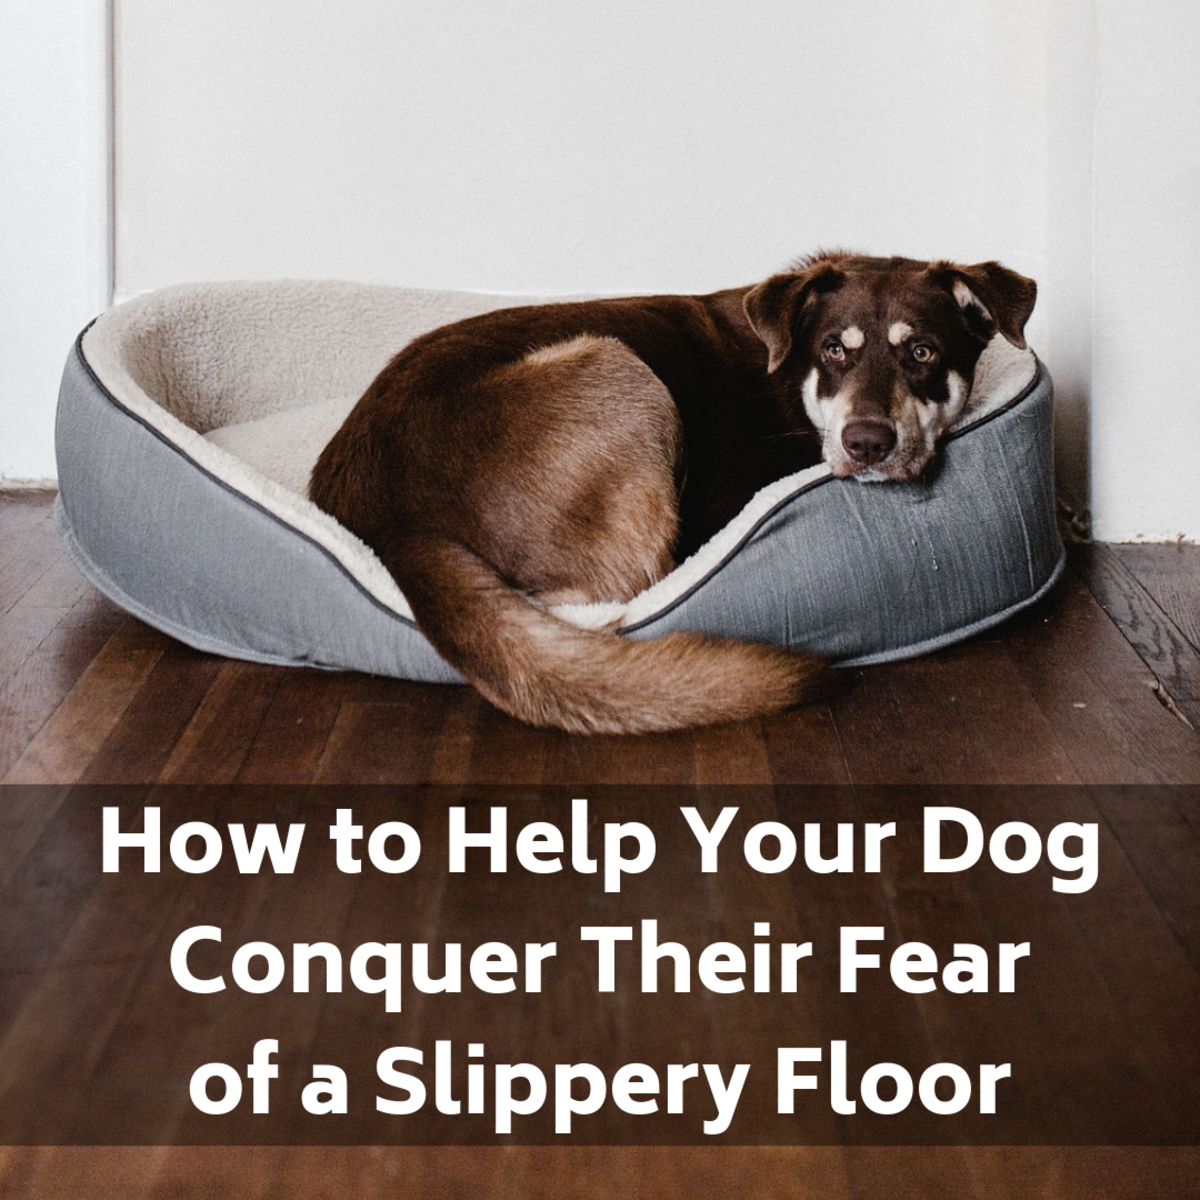 Why Is My Dog Suddenly Scared of the Slippery Floor?